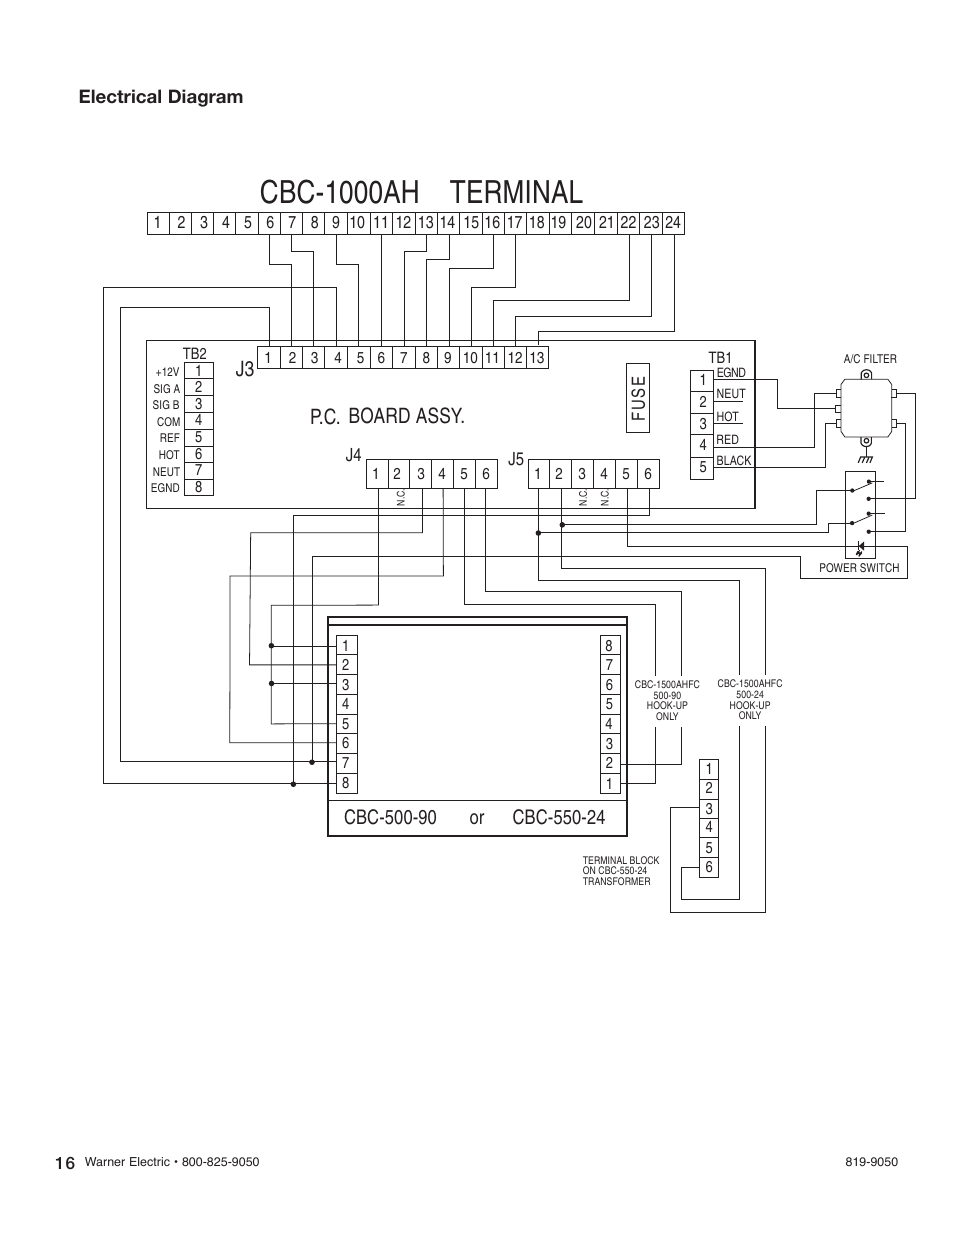 hight resolution of cbc 1000ah terminal p c board assy electrical diagram warner electric cbc 1550ahfc user manual page 16 22